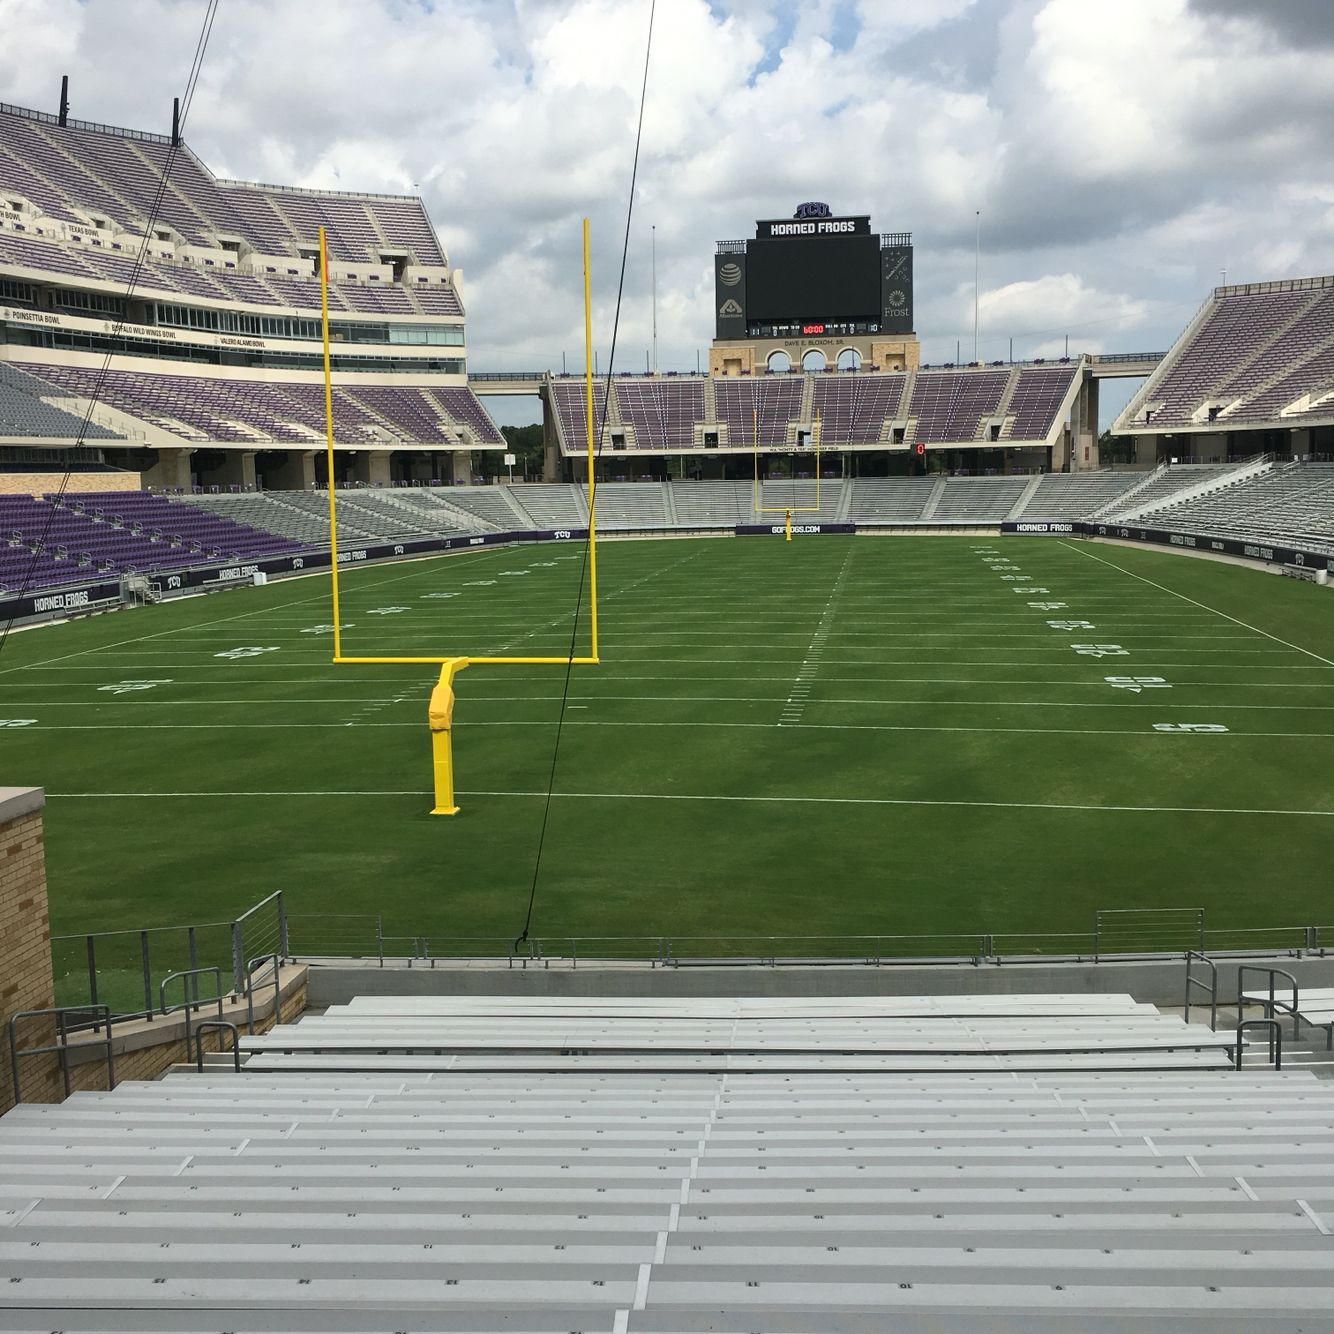 TCU football stadium Tcu football, Football stadiums